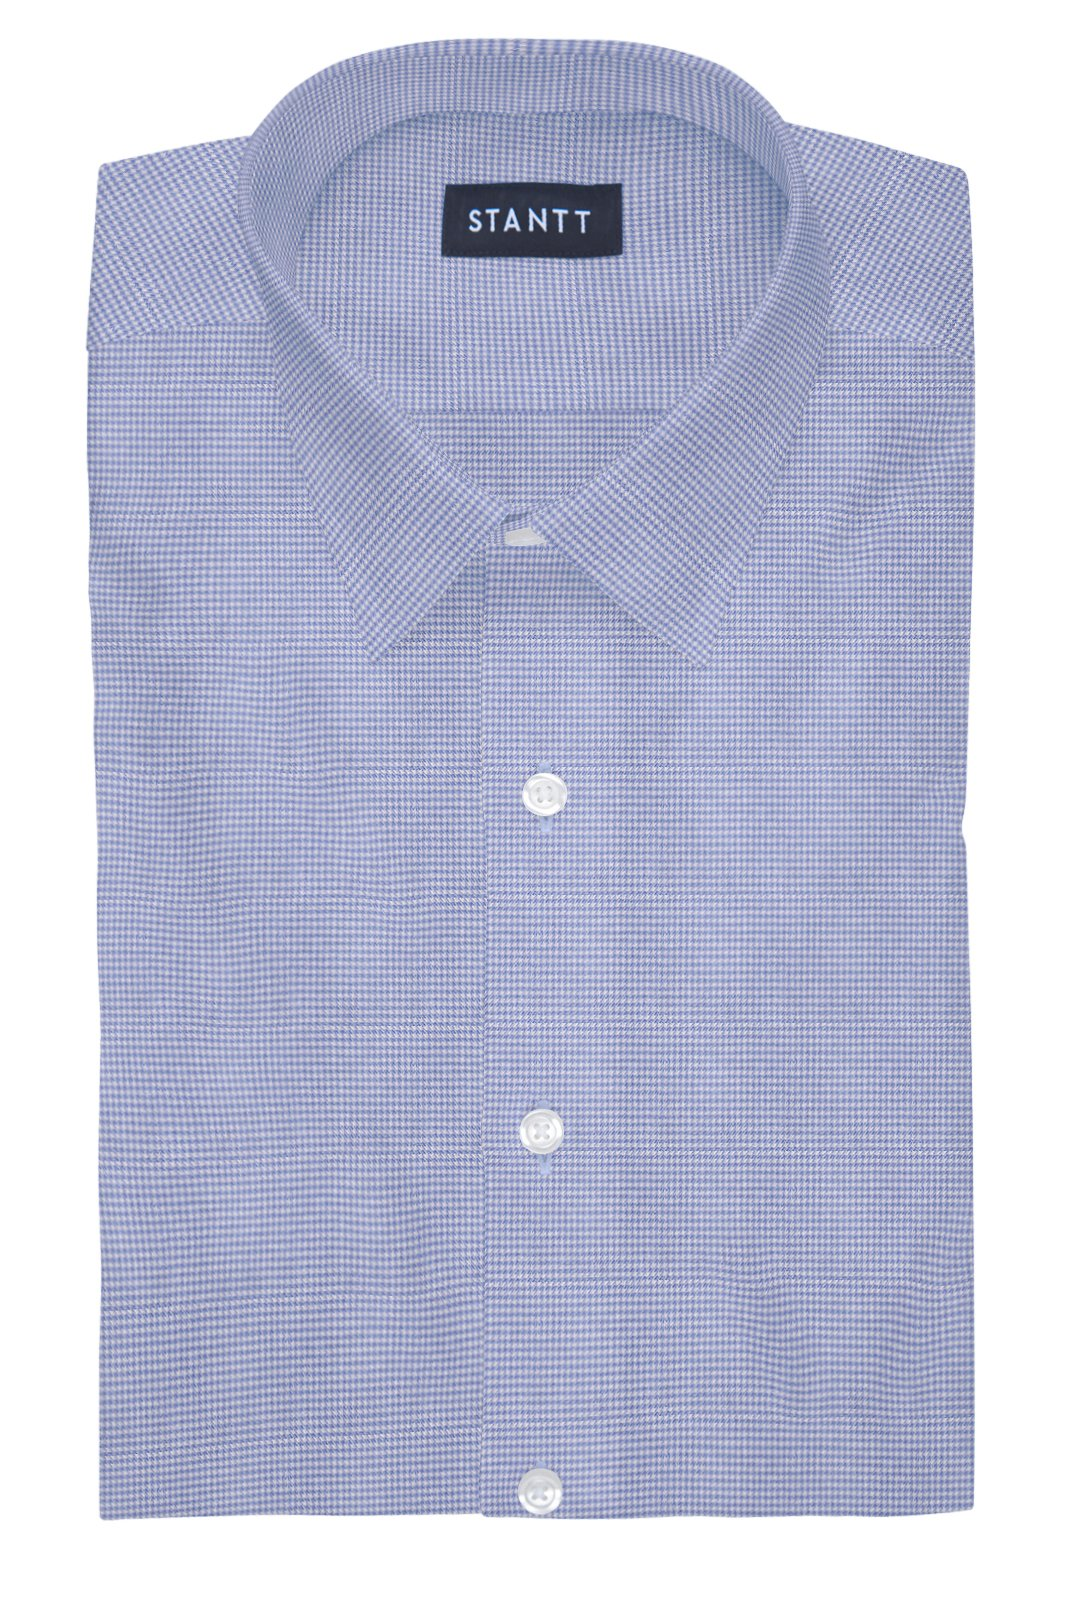 Performance Light Blue Houndstooth: Semi-Spread Collar, French Cuff